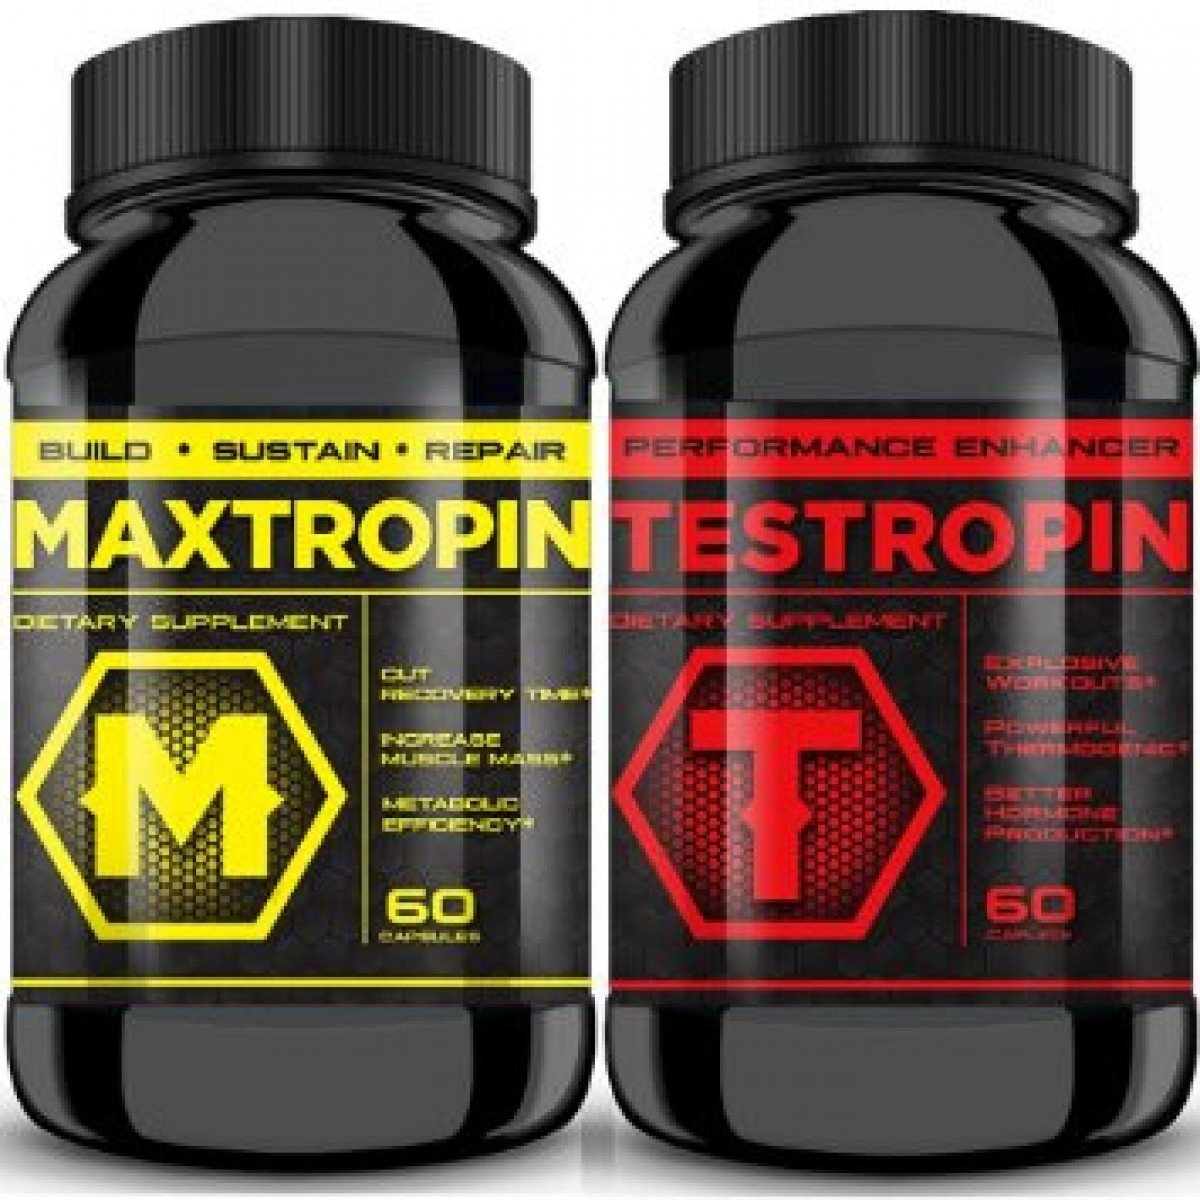 MAXTROPIN & TESTROPIN COMBO - Increase Muscle Mass, Cut Recovery Time, Improve Performance with better results!